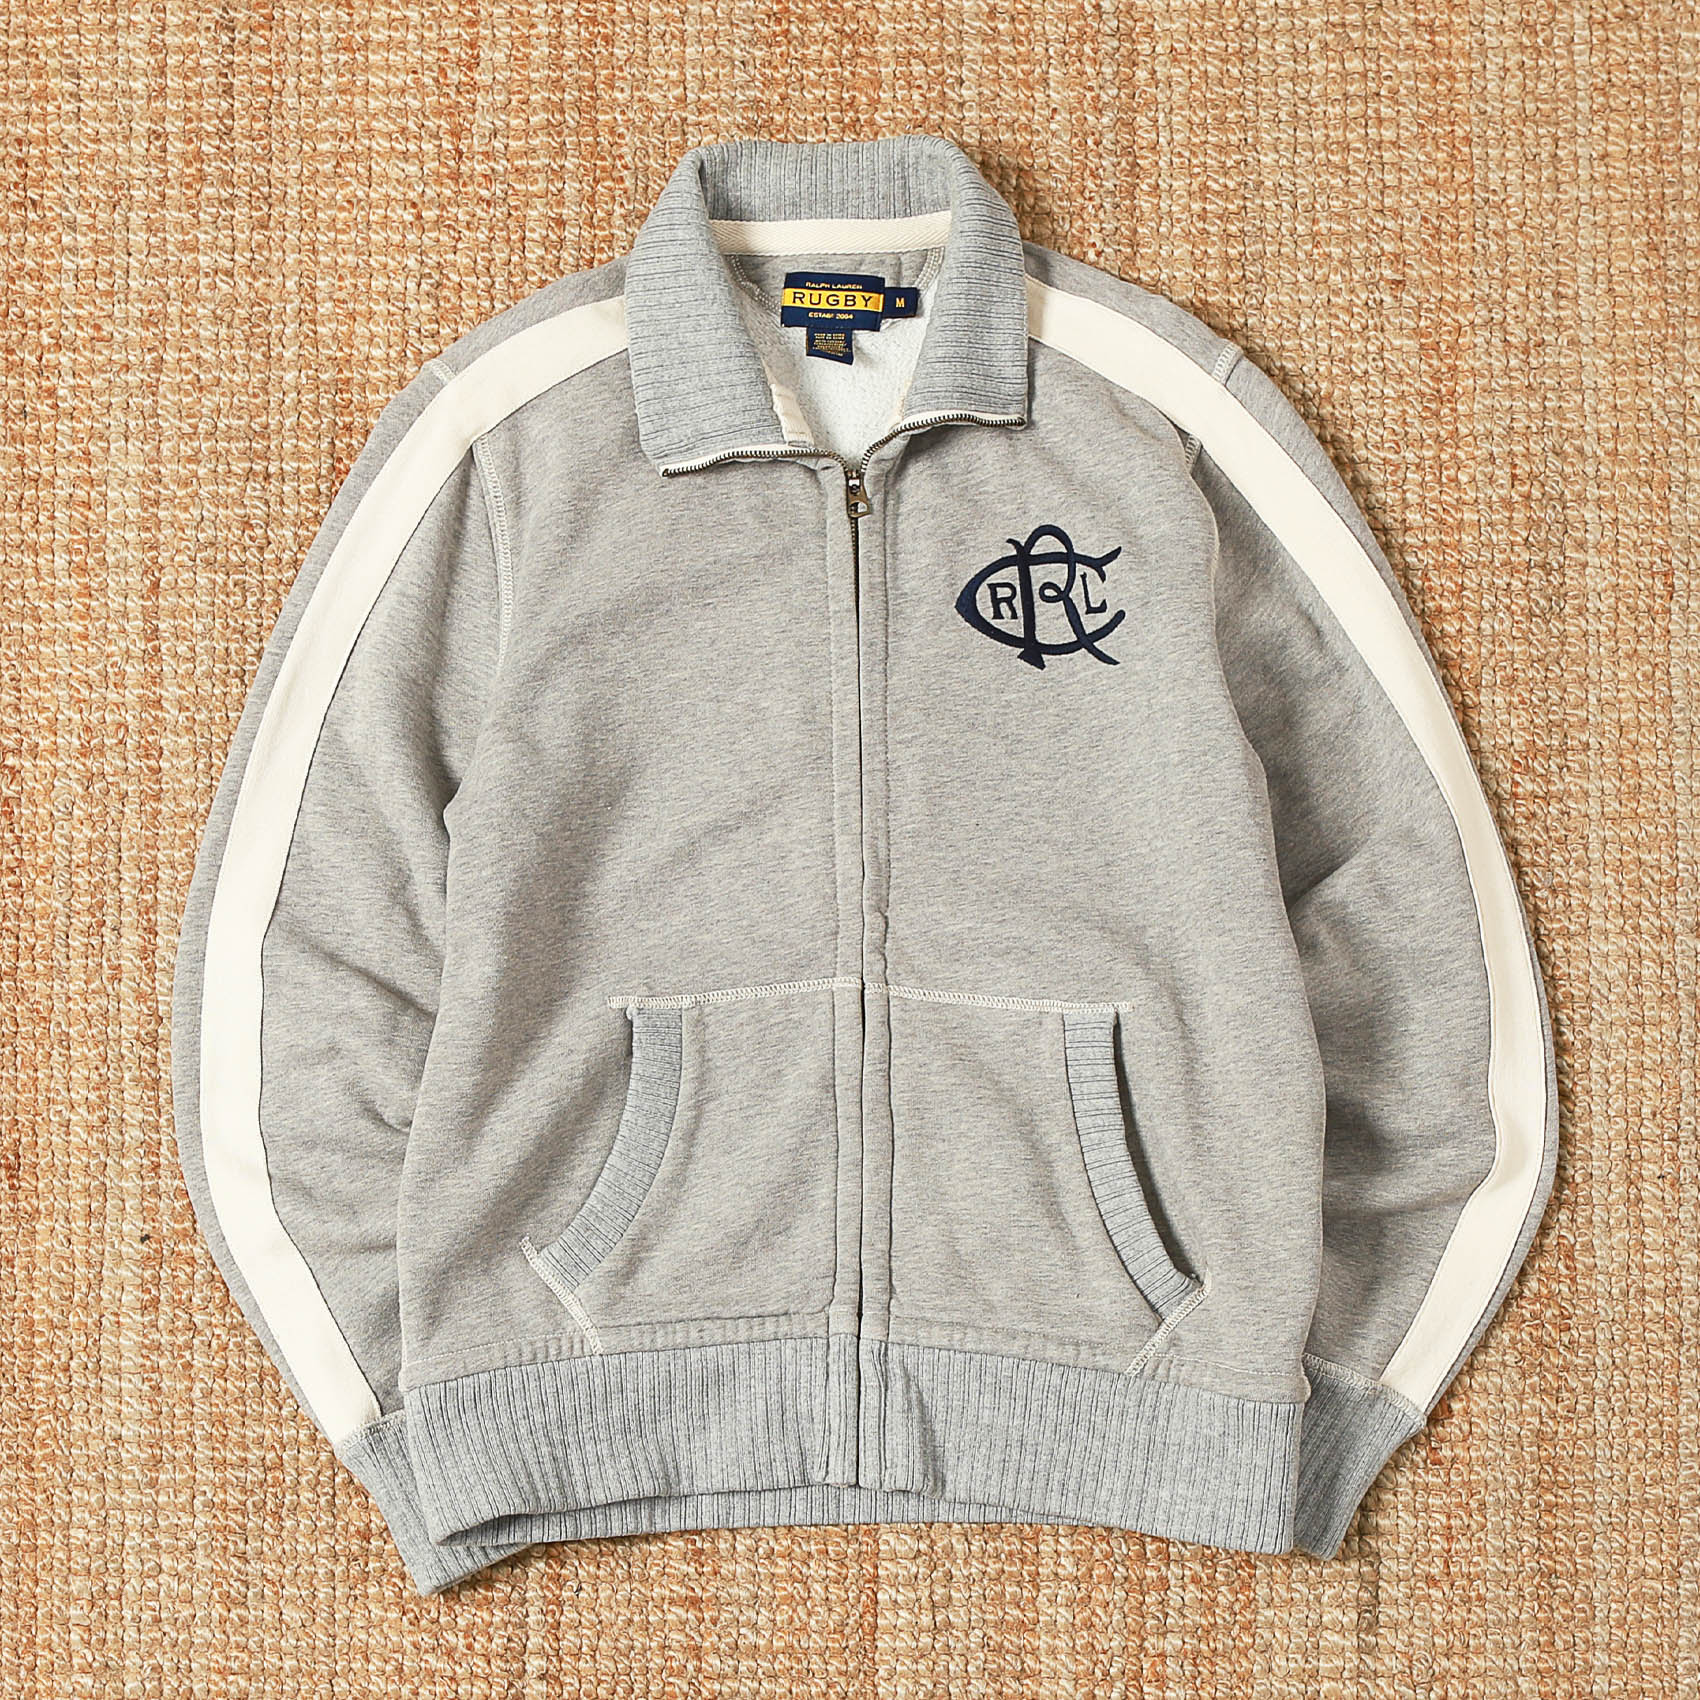 POLO RUGBY ZIP-UP SWEATER